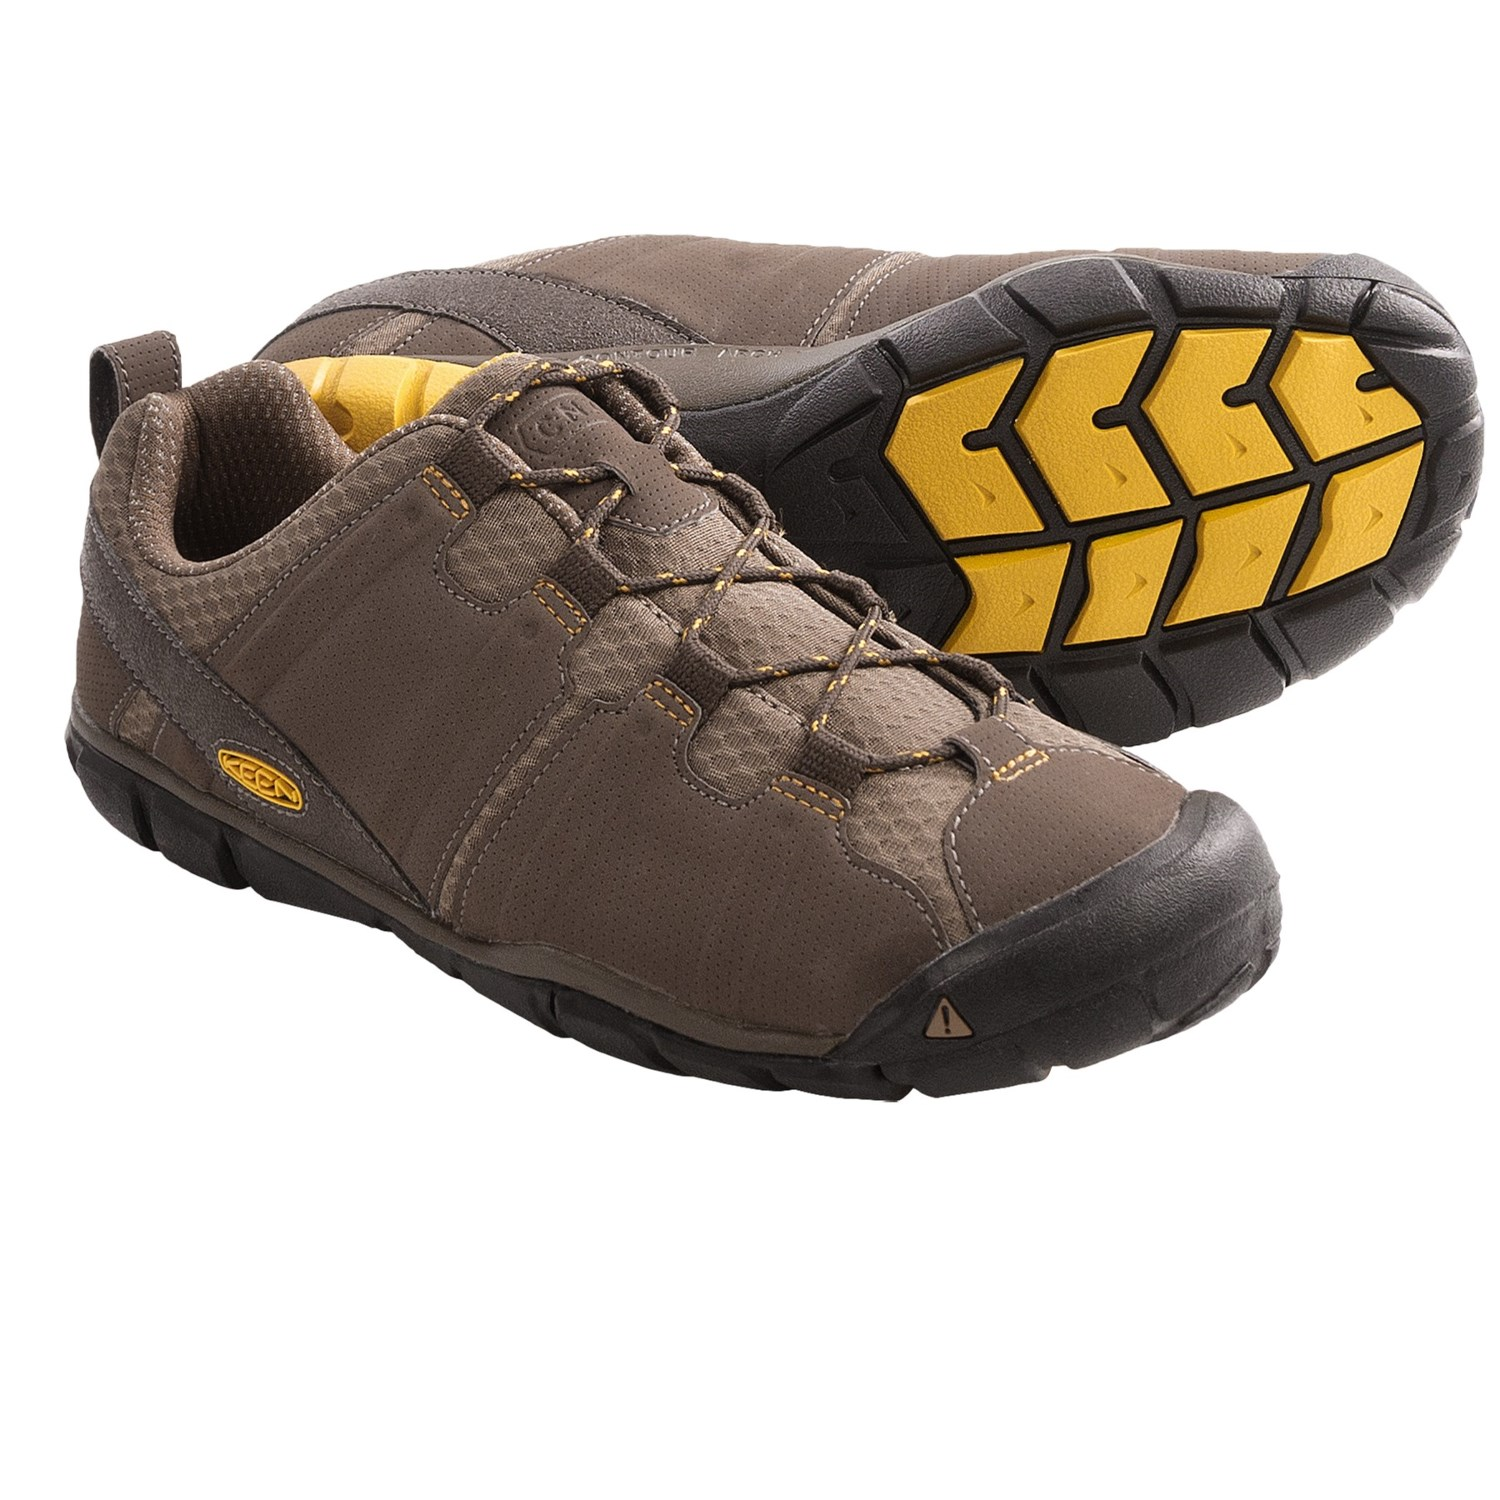 Keen tunari cnx hiking shoes lightweight for men in chocolate